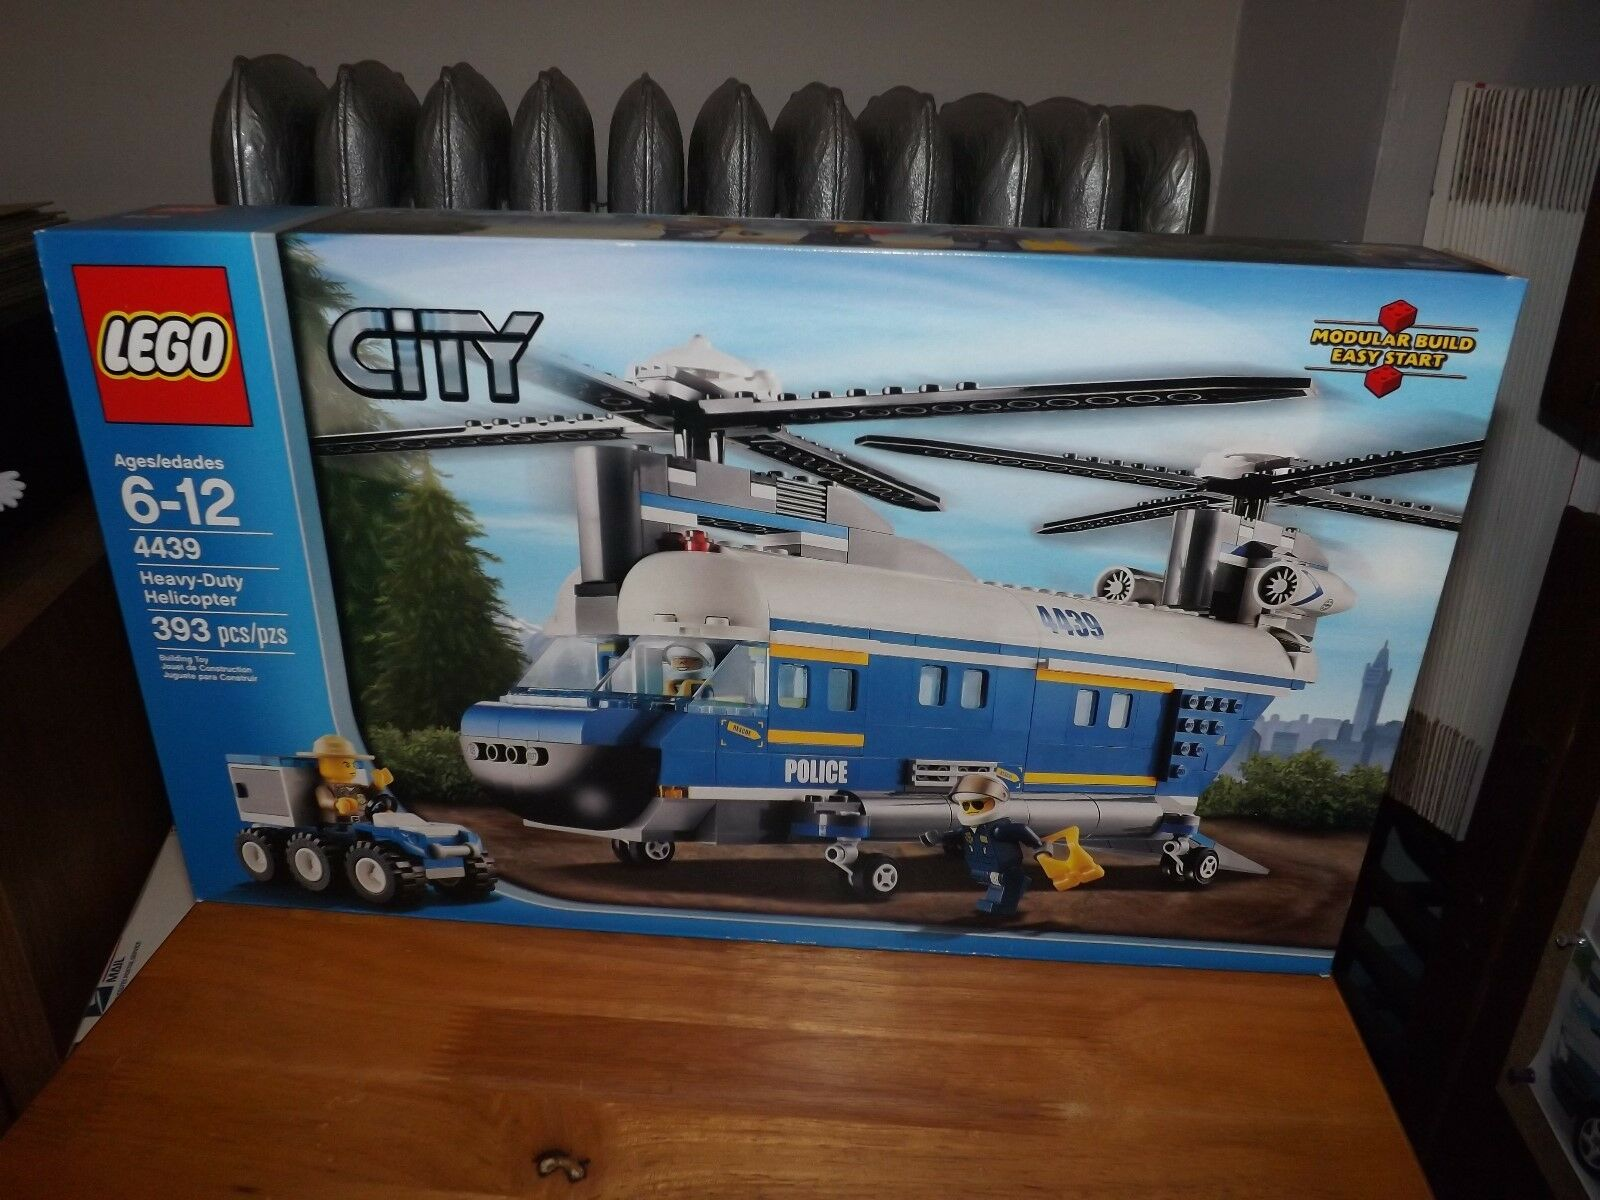 LEGO CITY HEAVY DUTY HELICOPTER, KIT  4439, 393 PIECES, NEW IN BOX, 2012